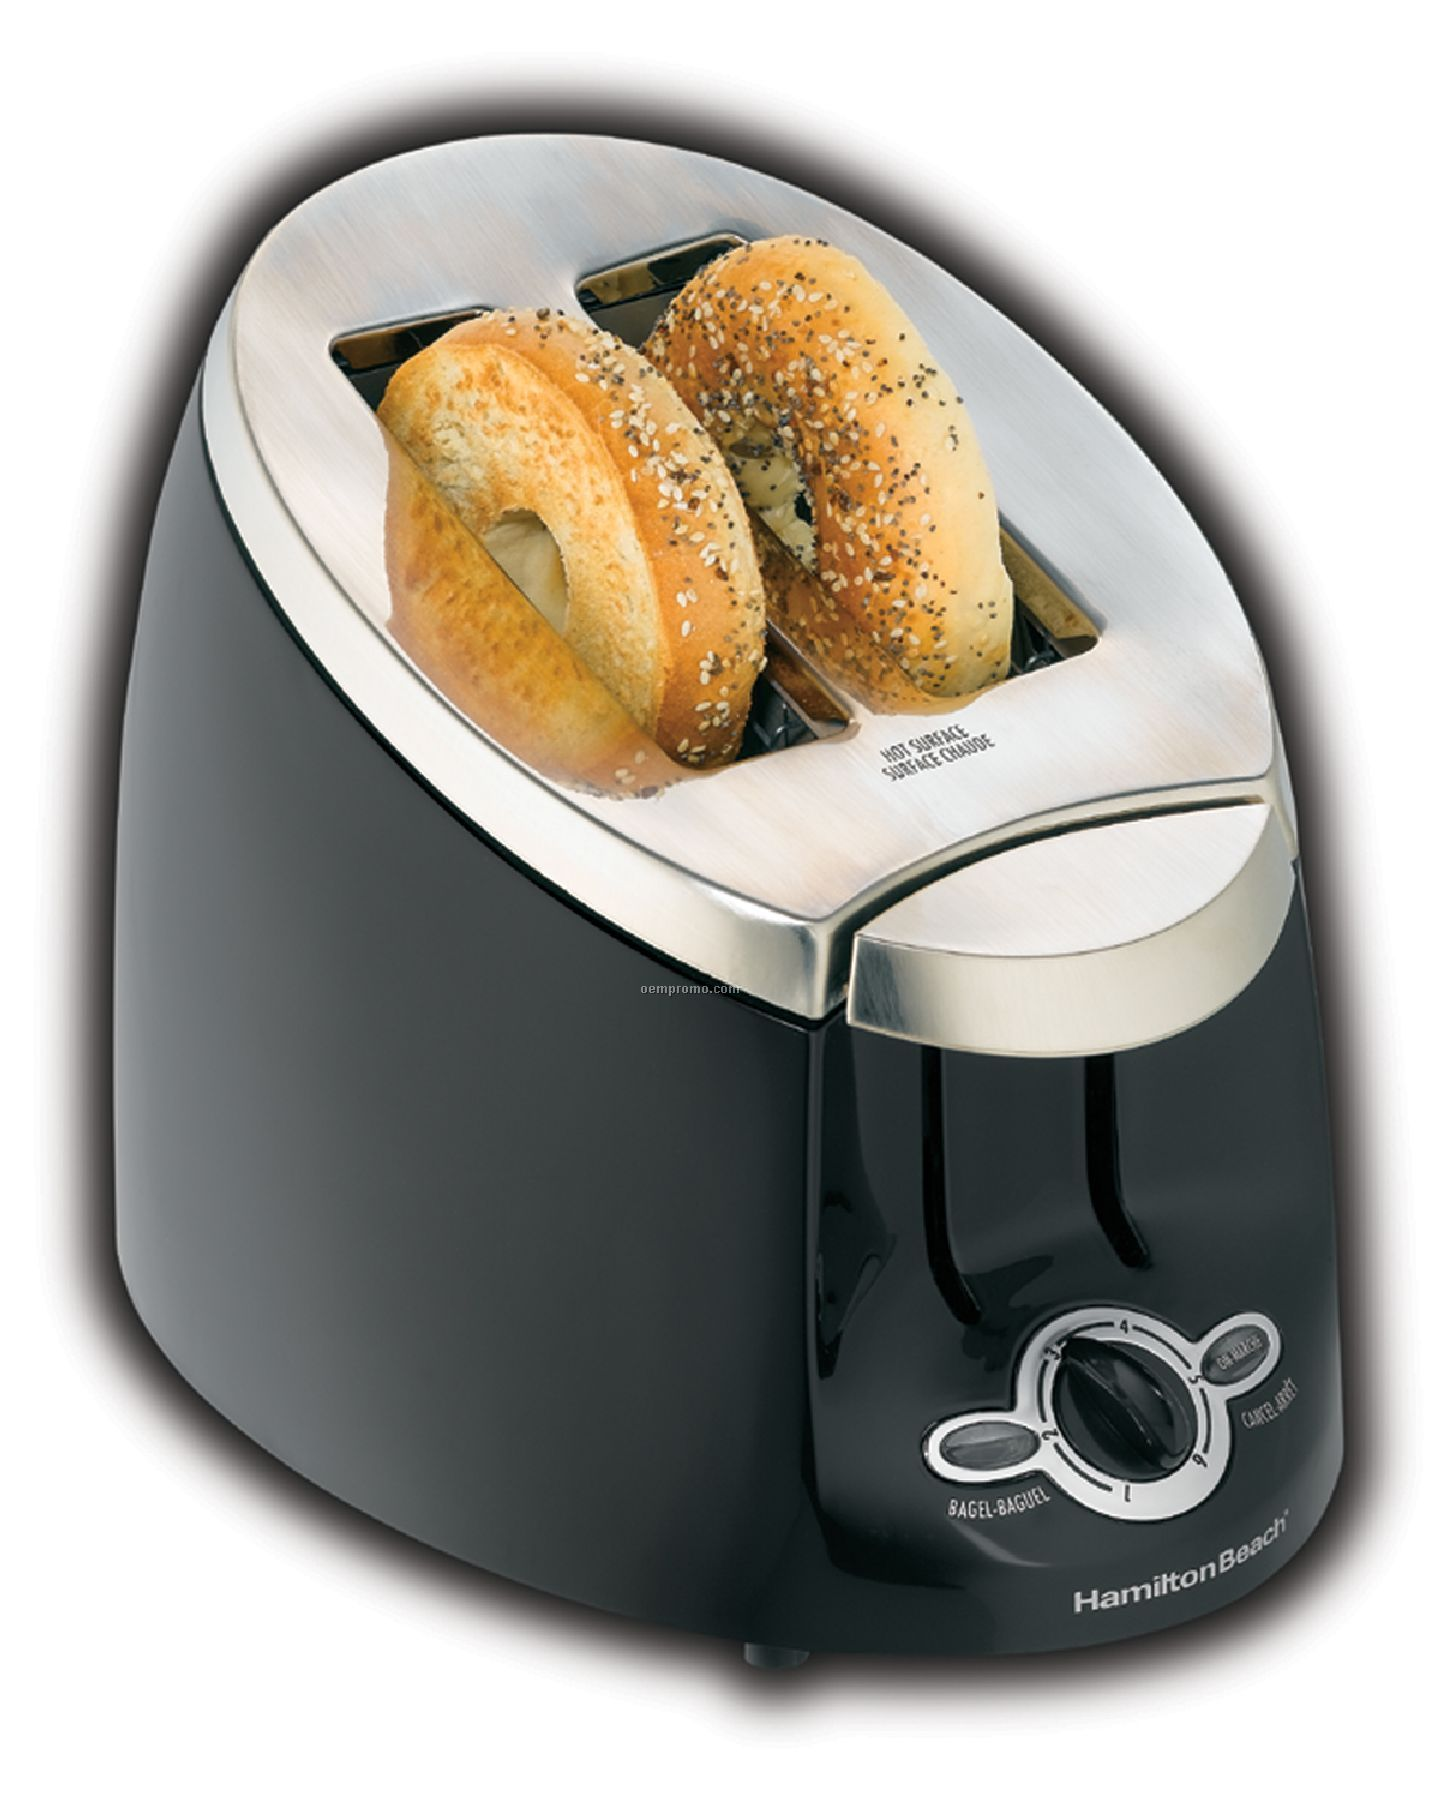 Hamilton Beach - Toasters - Ensemble 2 Slice - Black